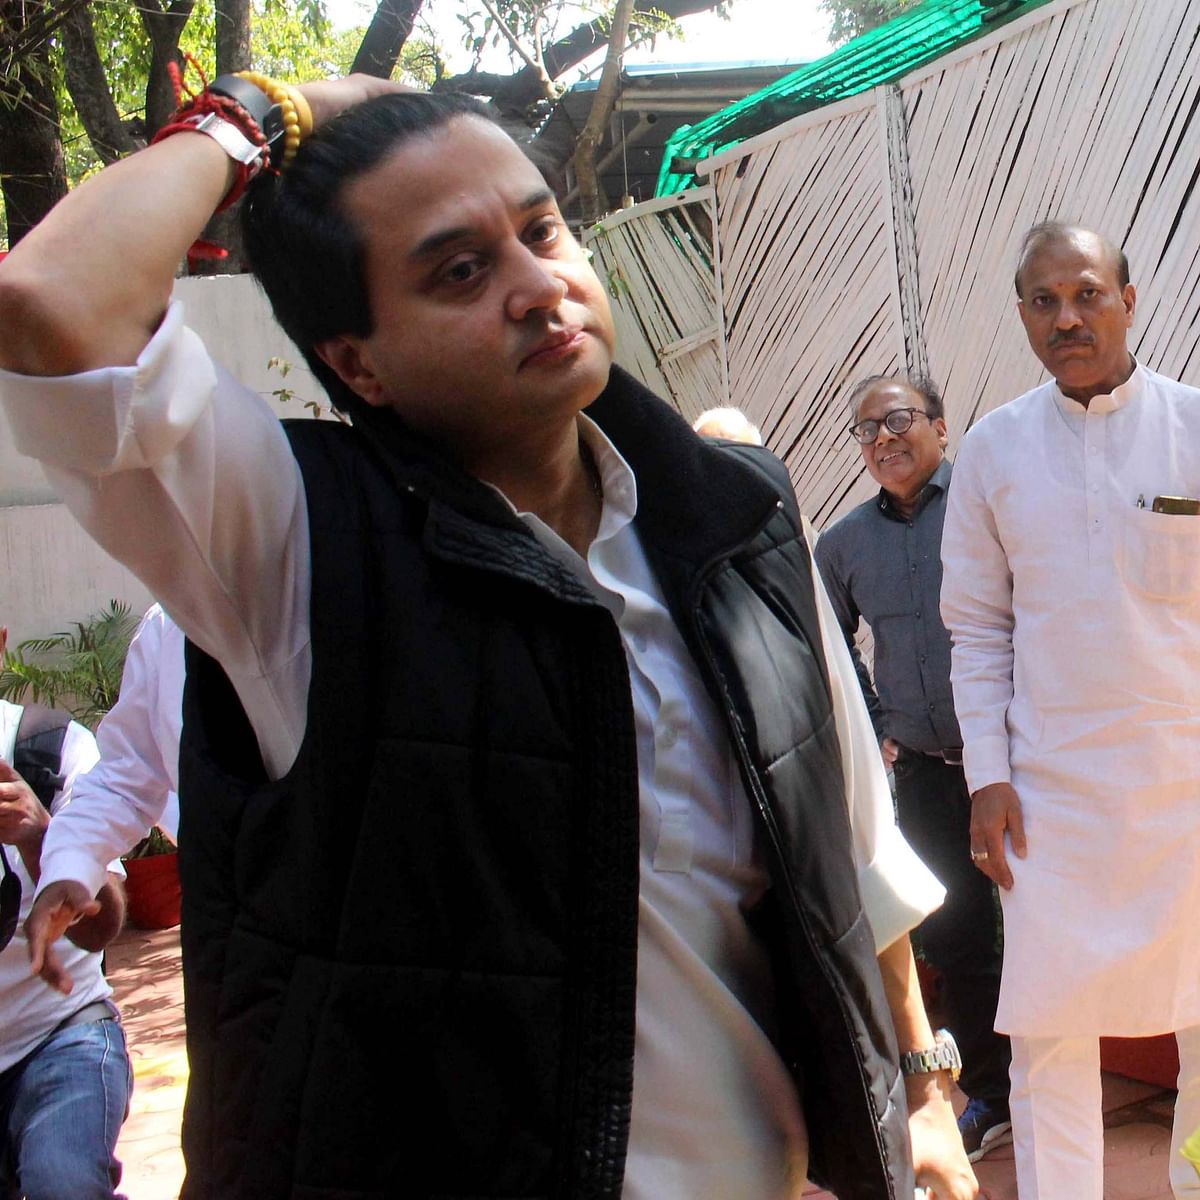 Family trouble: Is Jyotiraditya Scindia's entry lessening Yashodhara Raje's power in party?